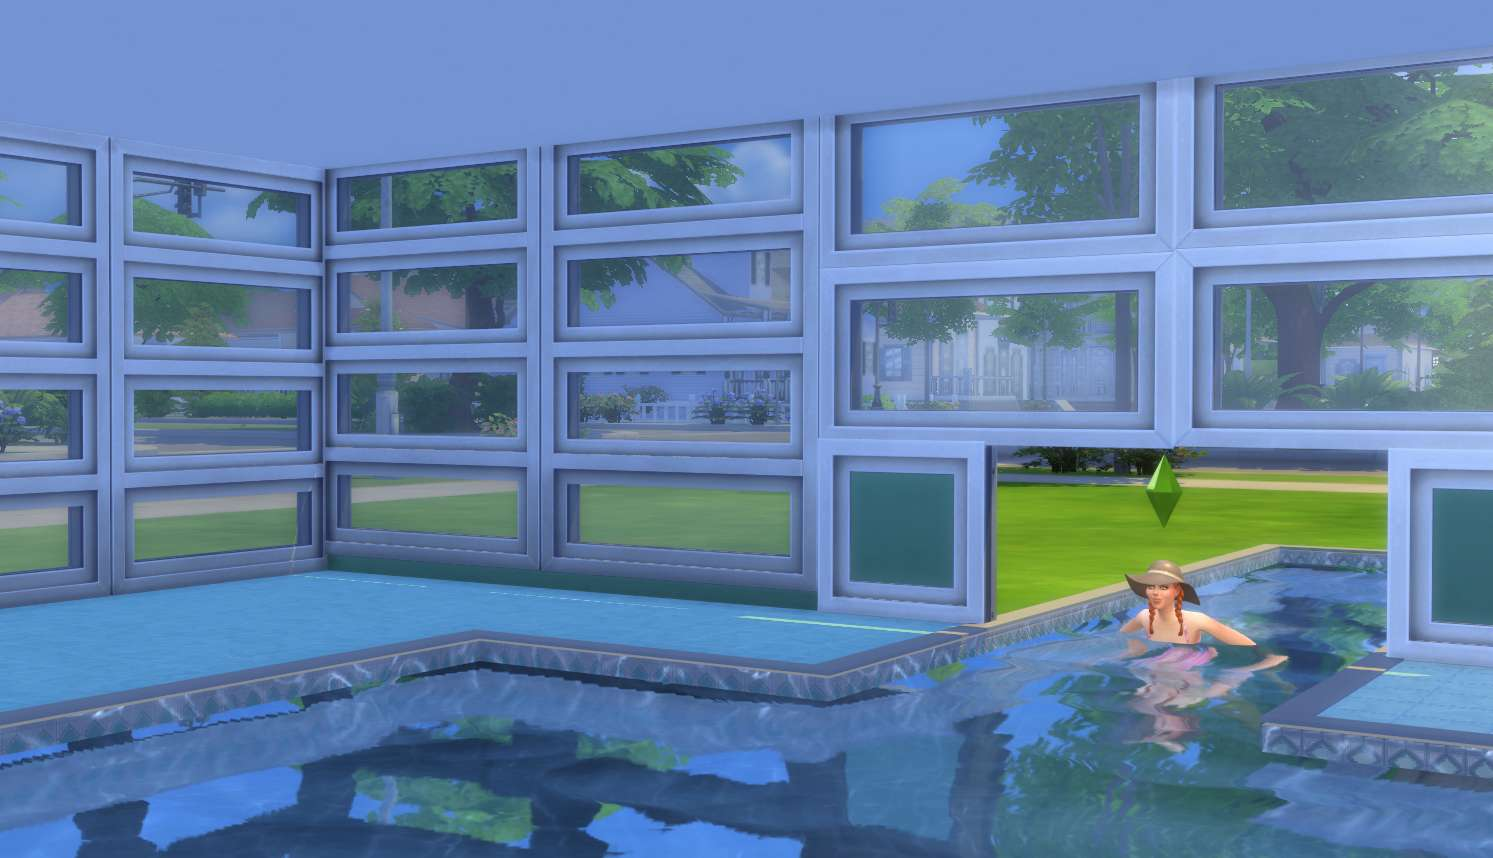 The sims 4 building landscaping pools indoor outdoor for Pool design sims 3